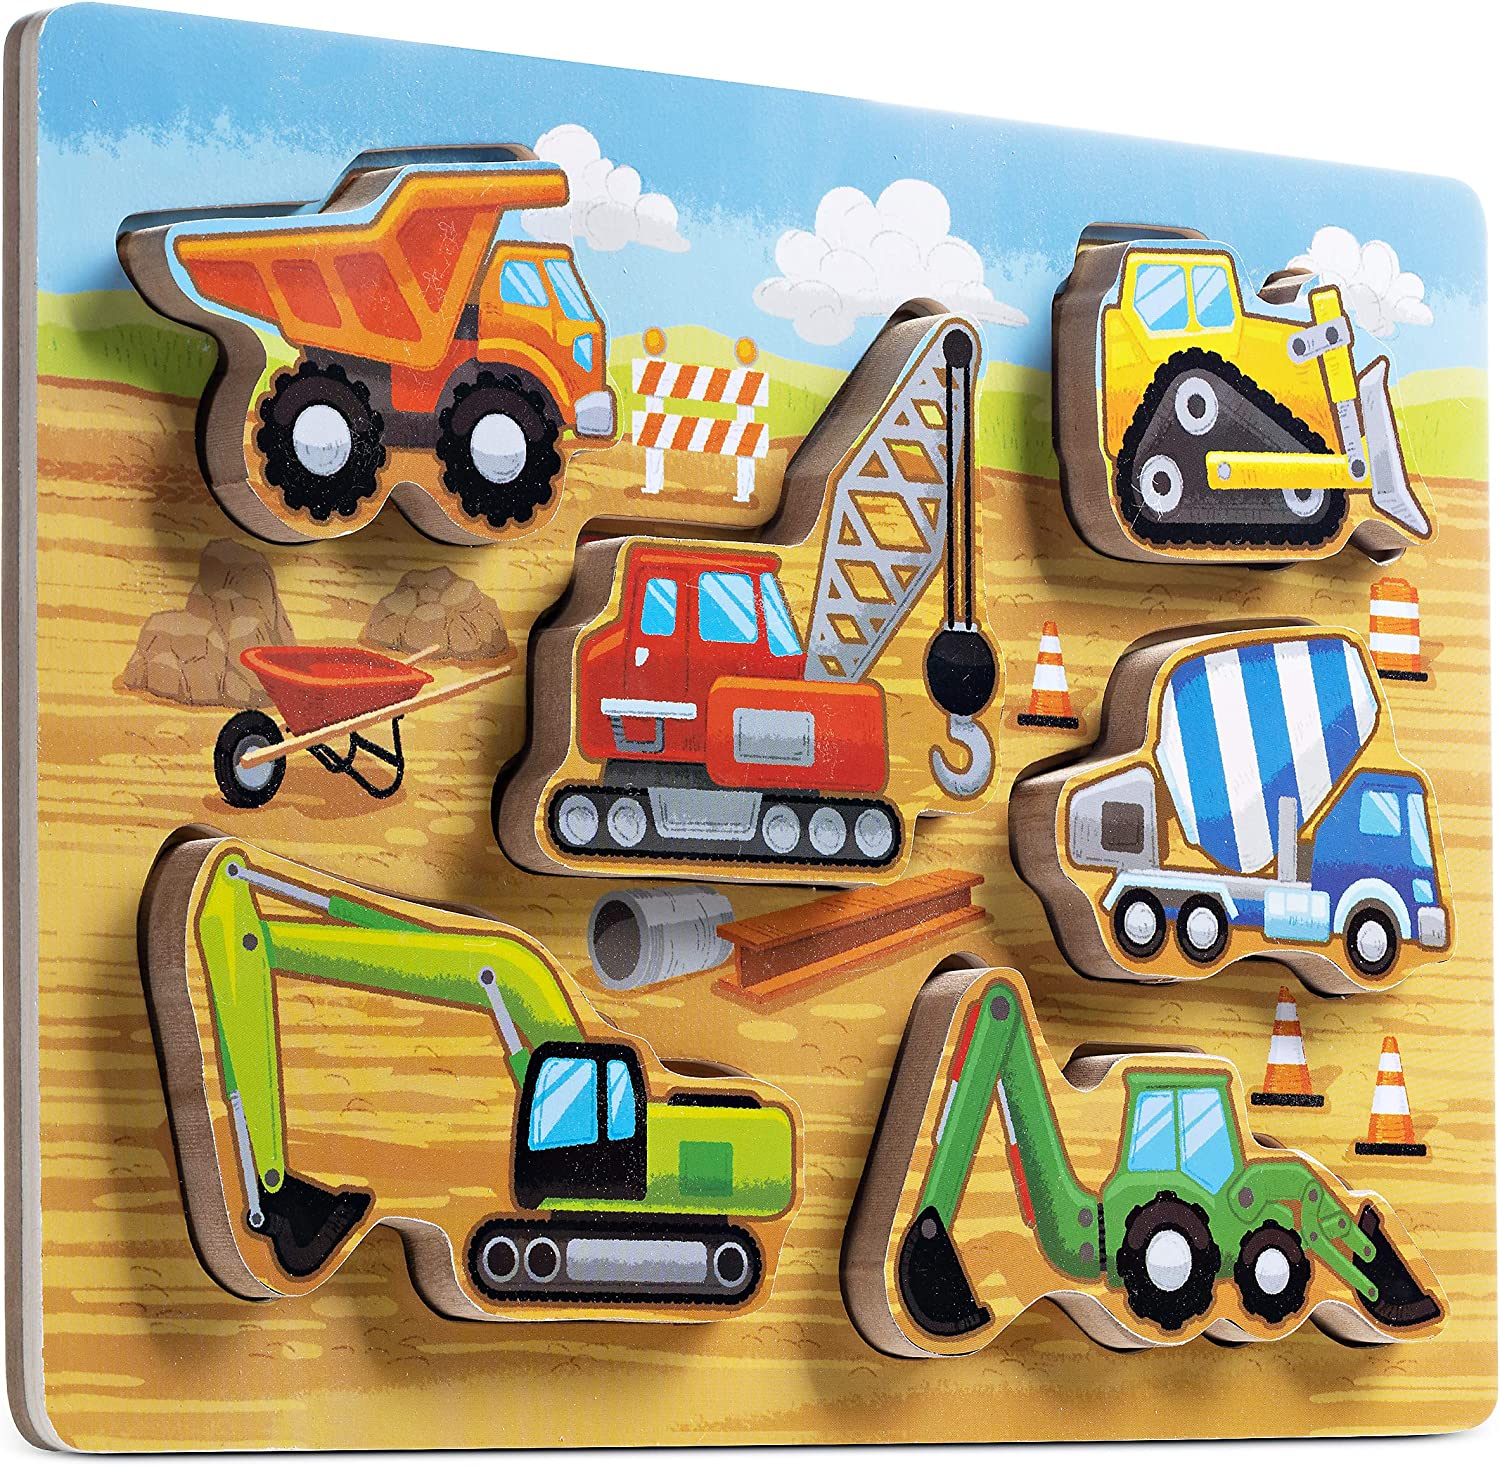 6 Piece/Chunky Puzzle Educational Learning Fun Toy for Babys and Toddlers Wooden Construction Style Puzzle